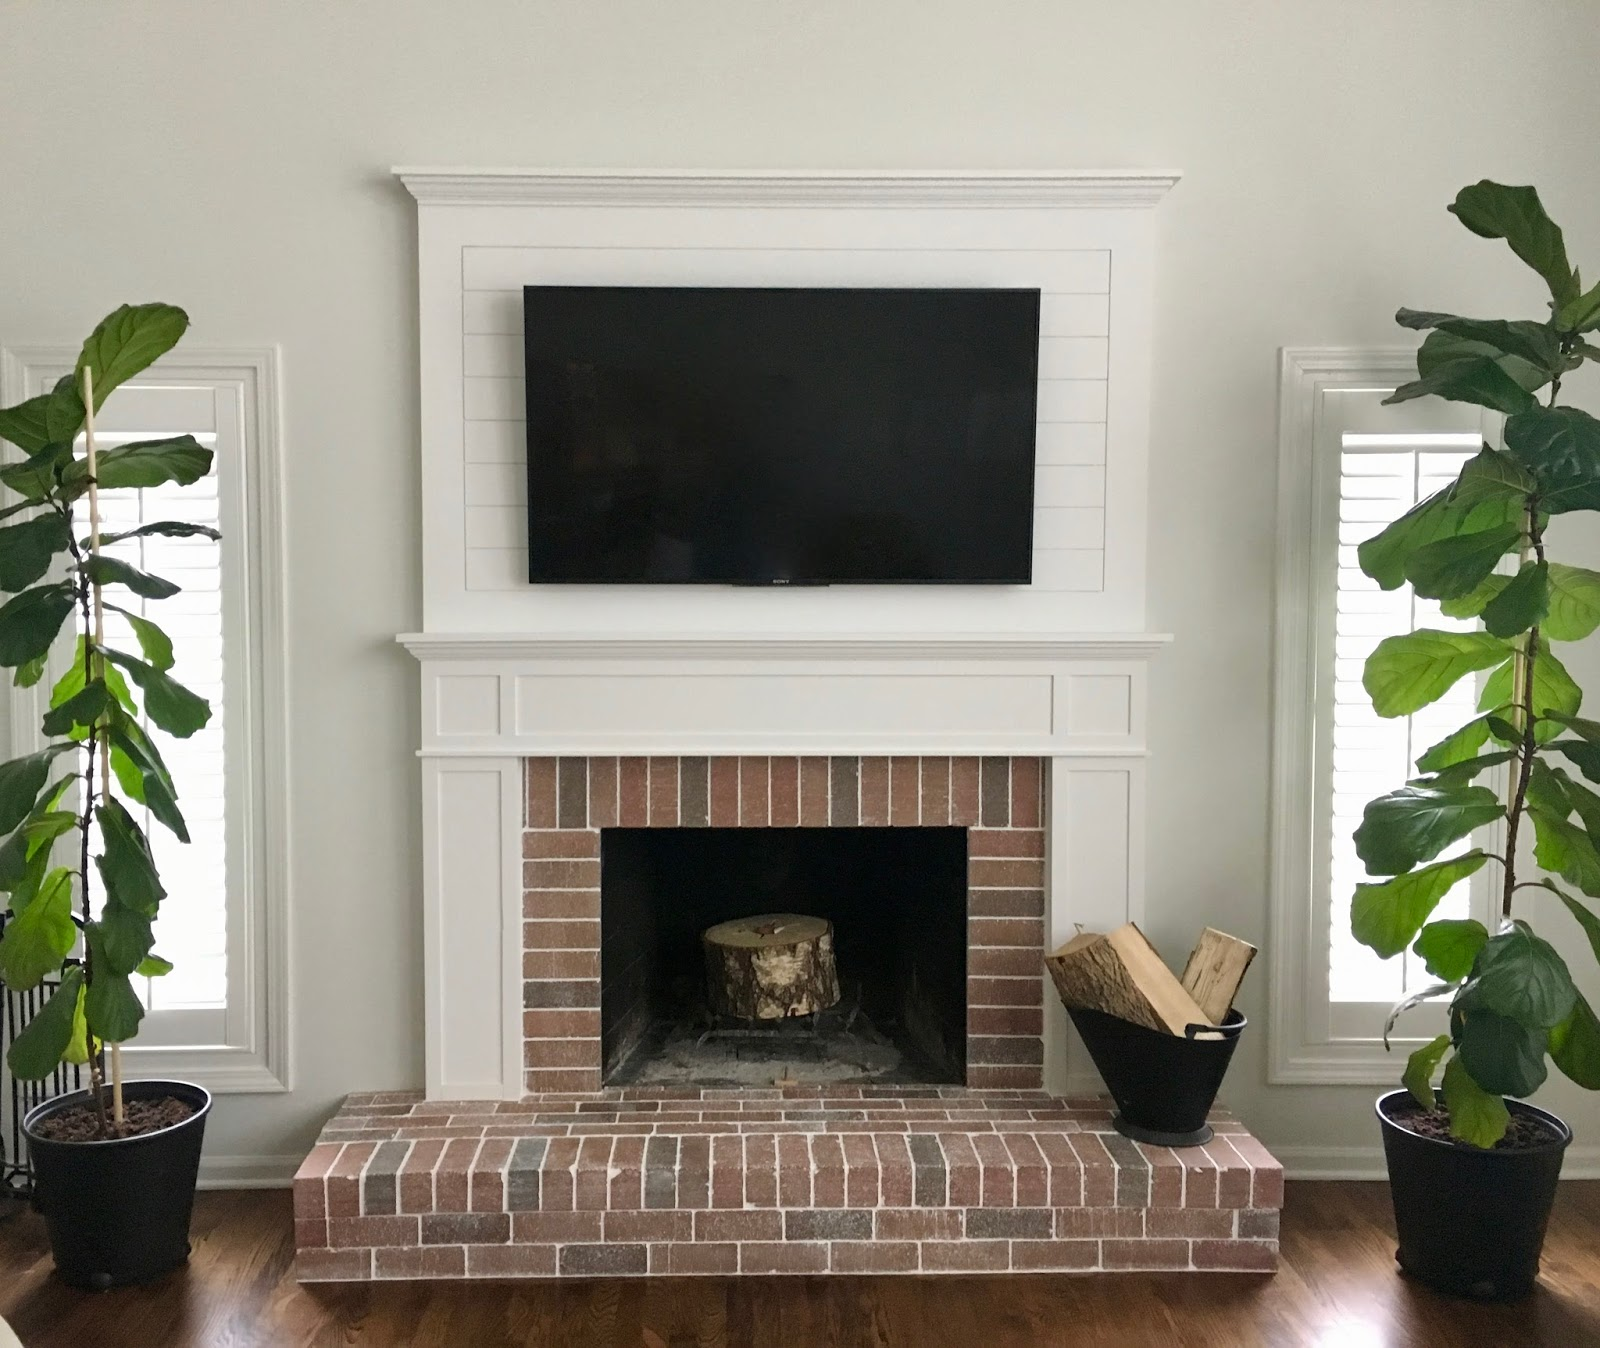 Amanda rapp design farmhouse fireplace remodel for Farmhouse fireplace decor